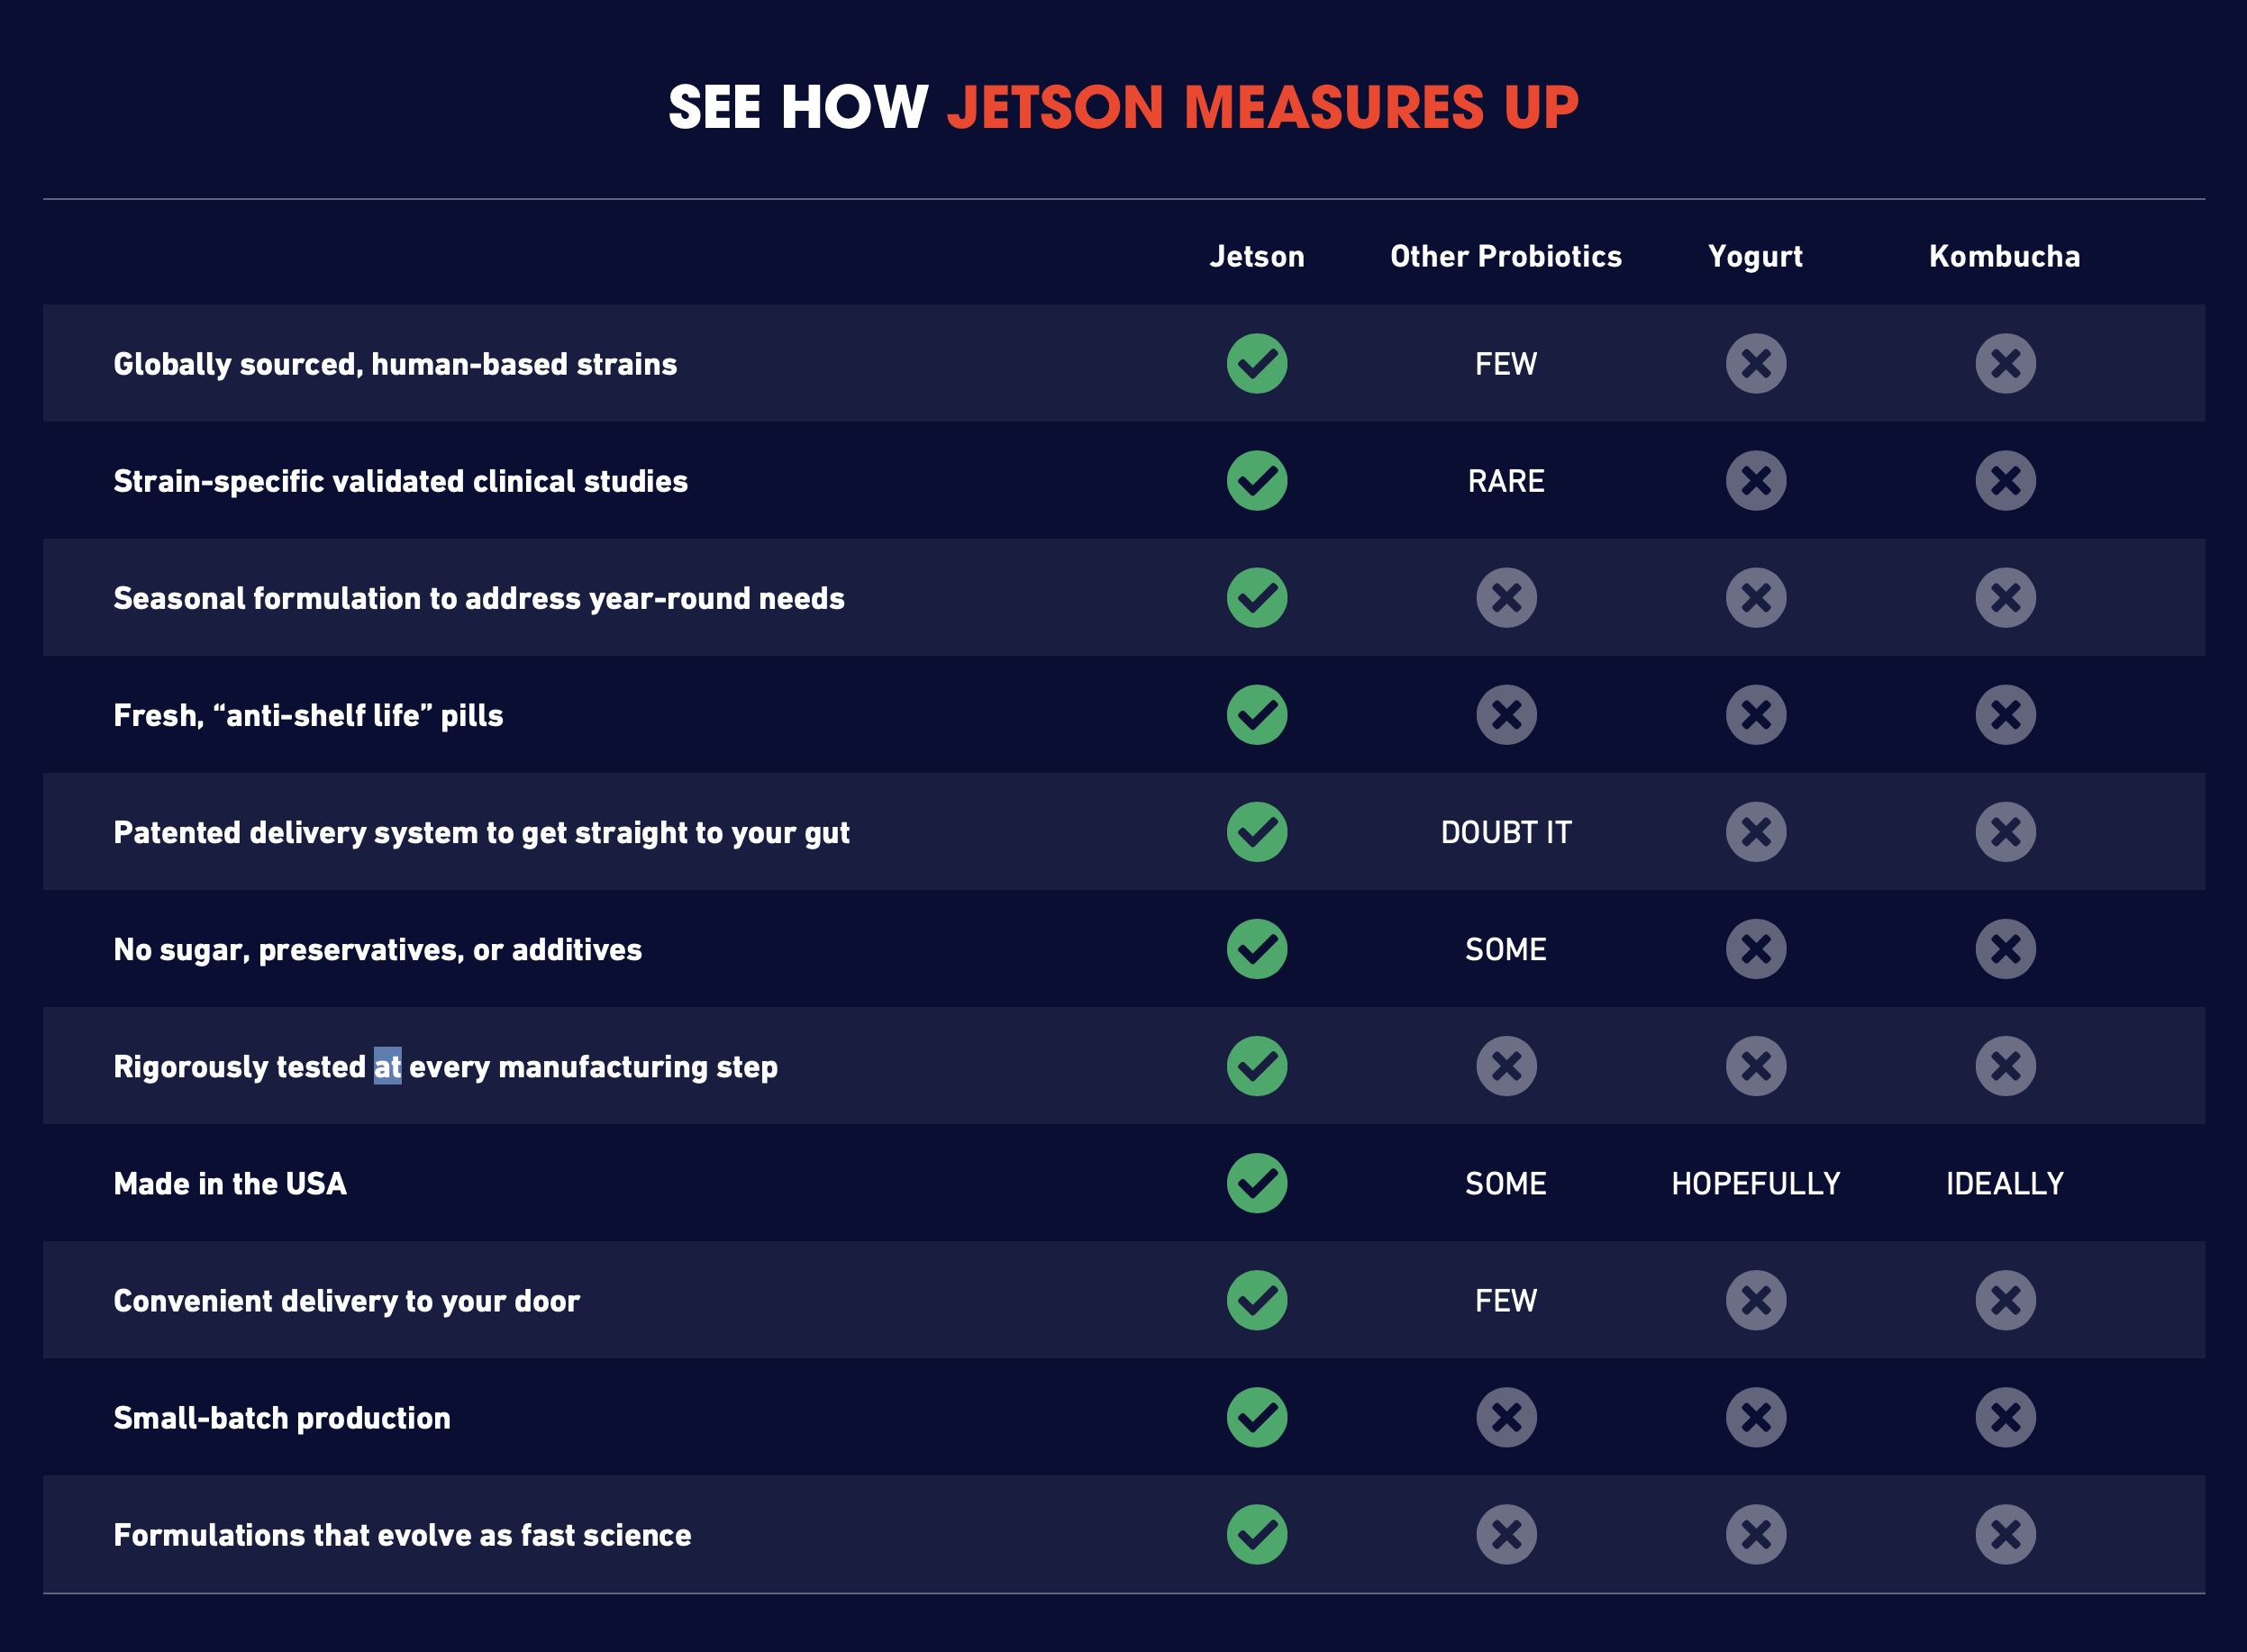 Compare Jetson to other probiotic sources